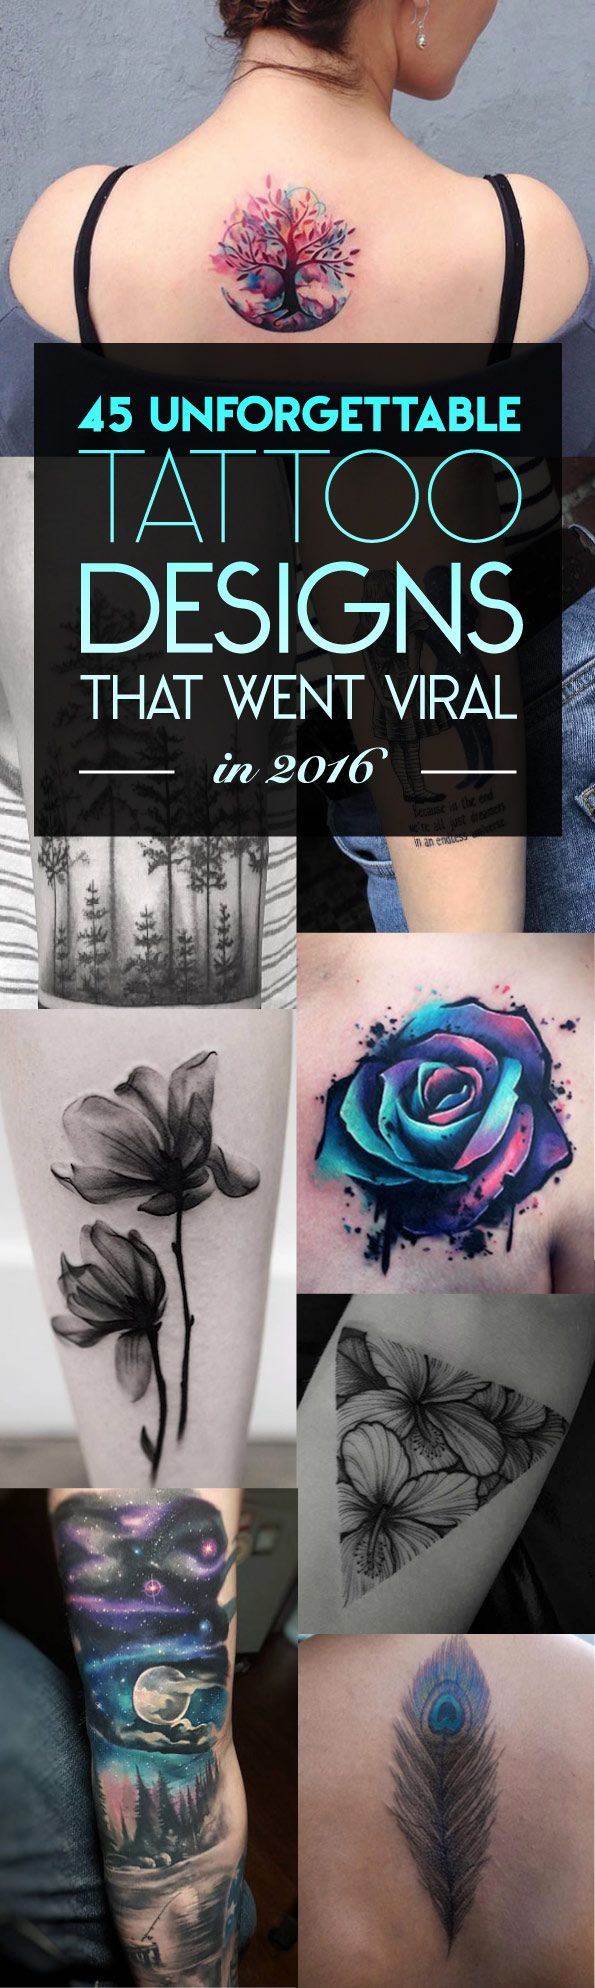 45 Unforgettable Tattoo Designs That Went Viral in 2016 | TattooBlend